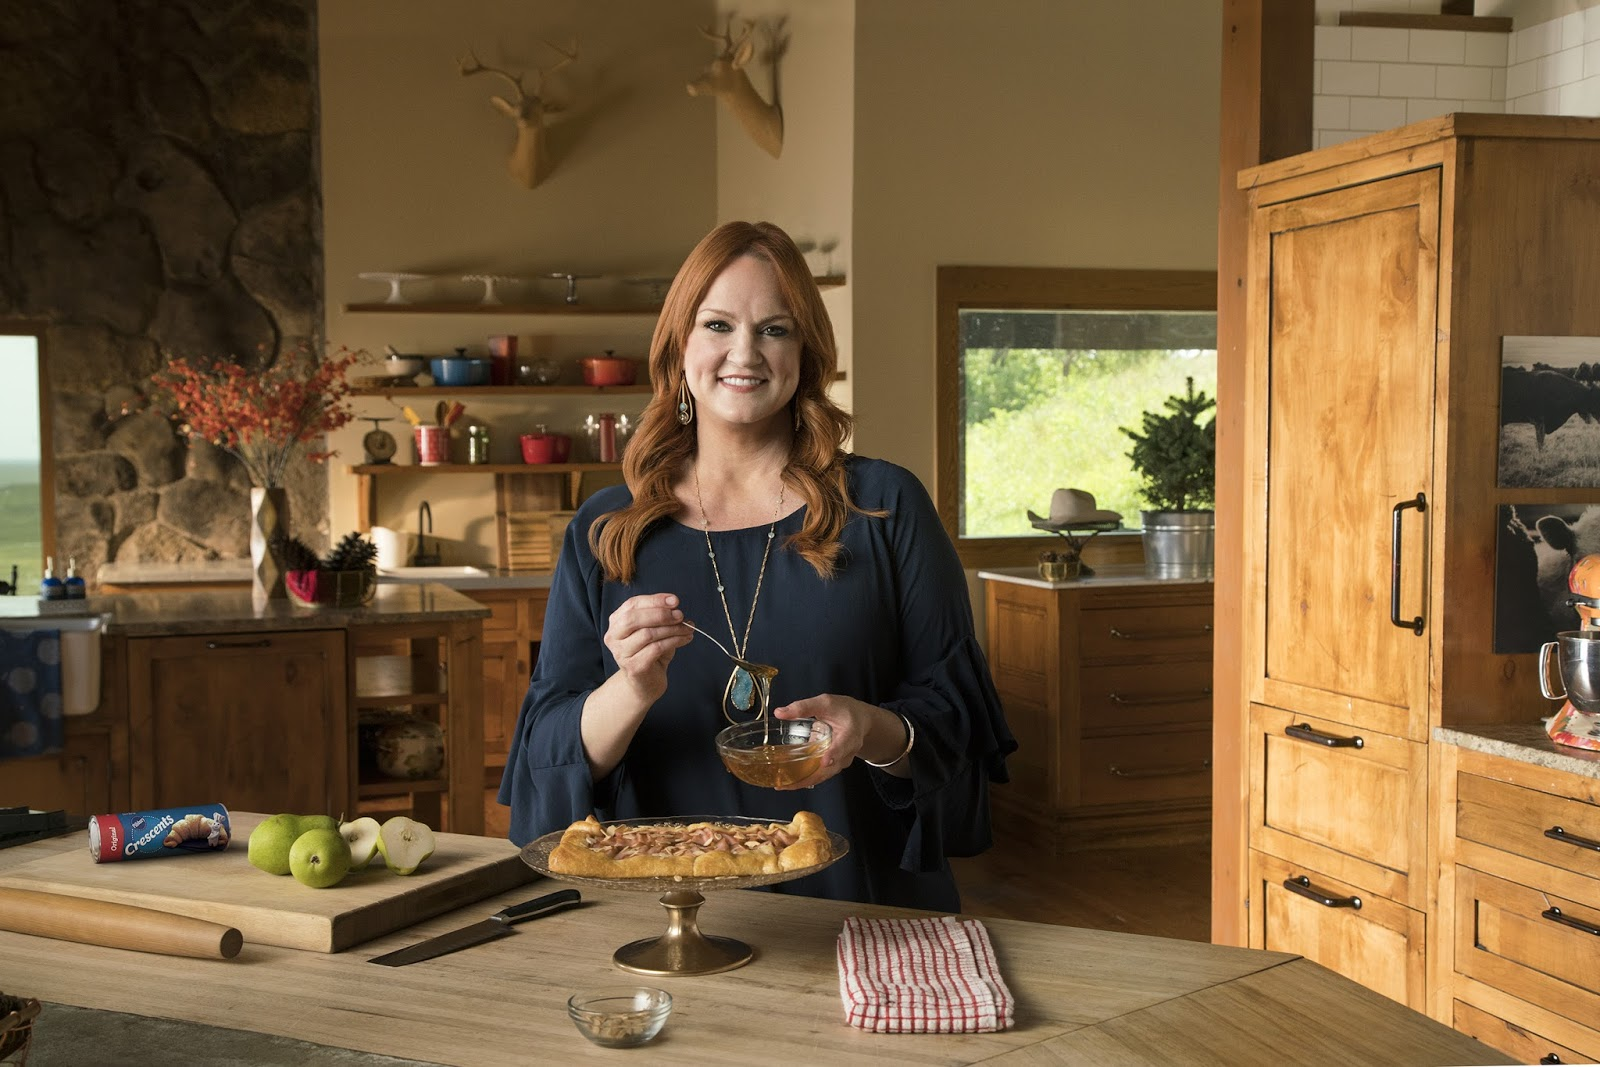 Pioneer woman food network cancelled - Pillsbury Bake Off Returns With Food Network As Partner